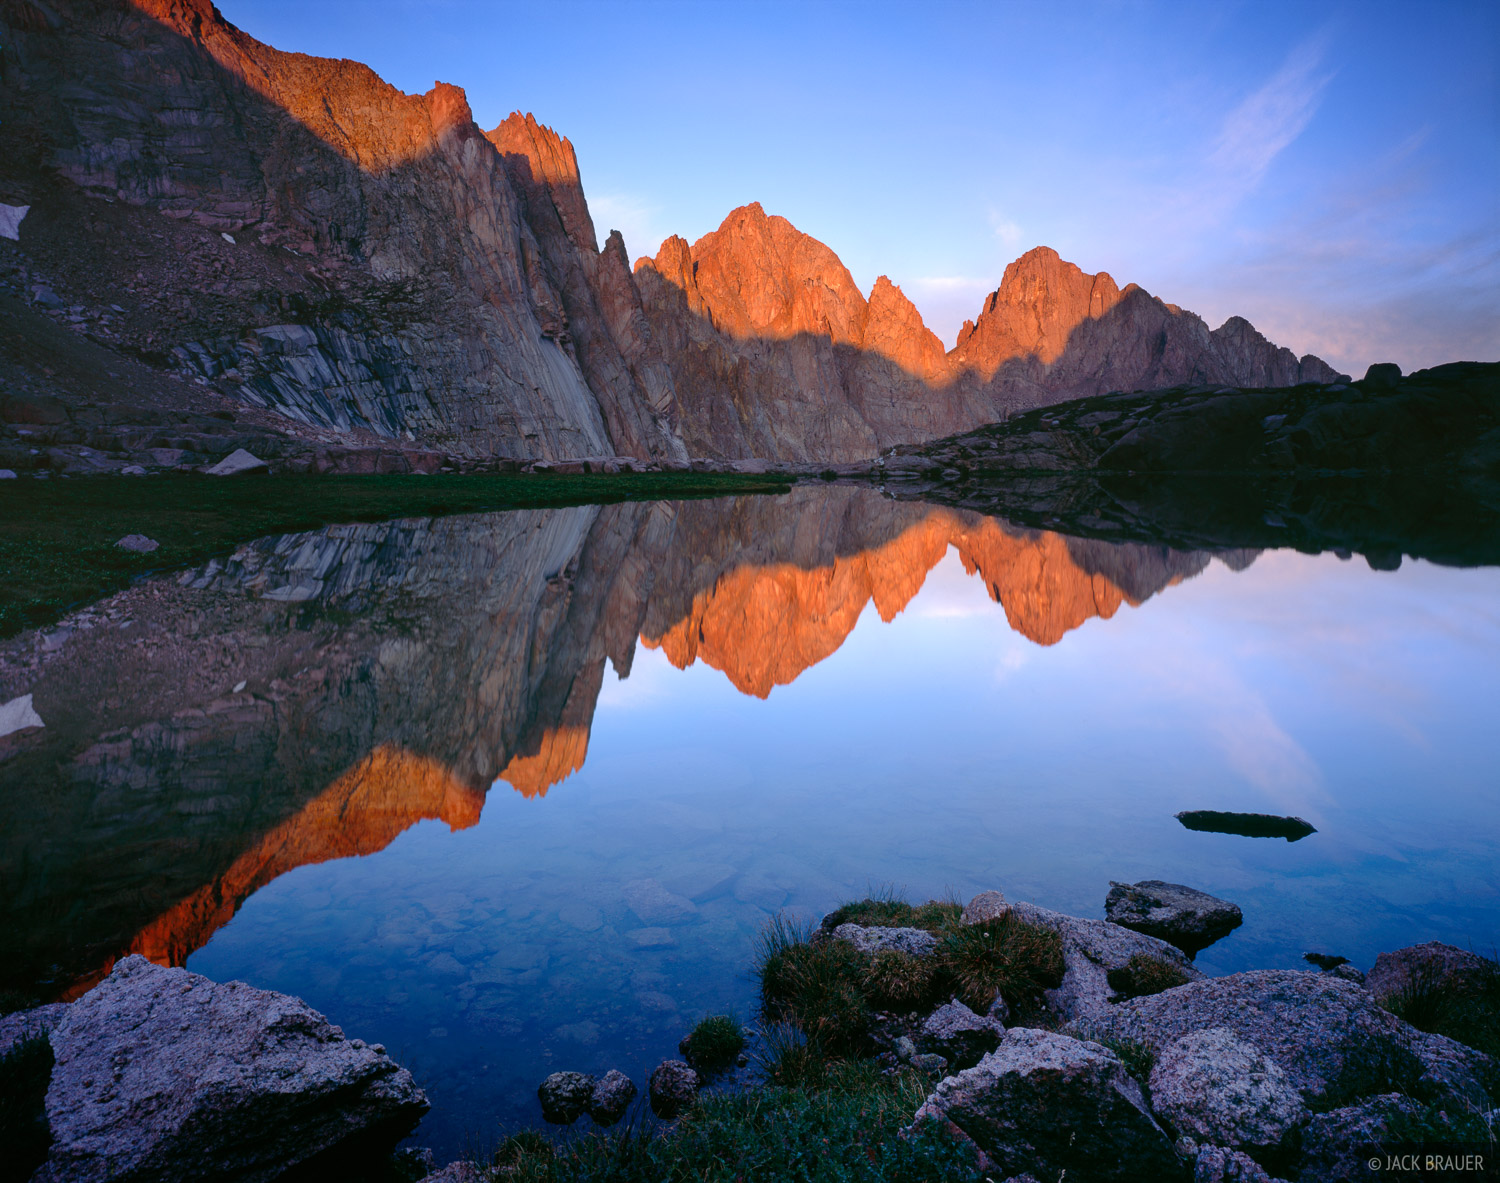 Morning alpenglow reflection of the Needle Mountains, San Juan Mountains - August